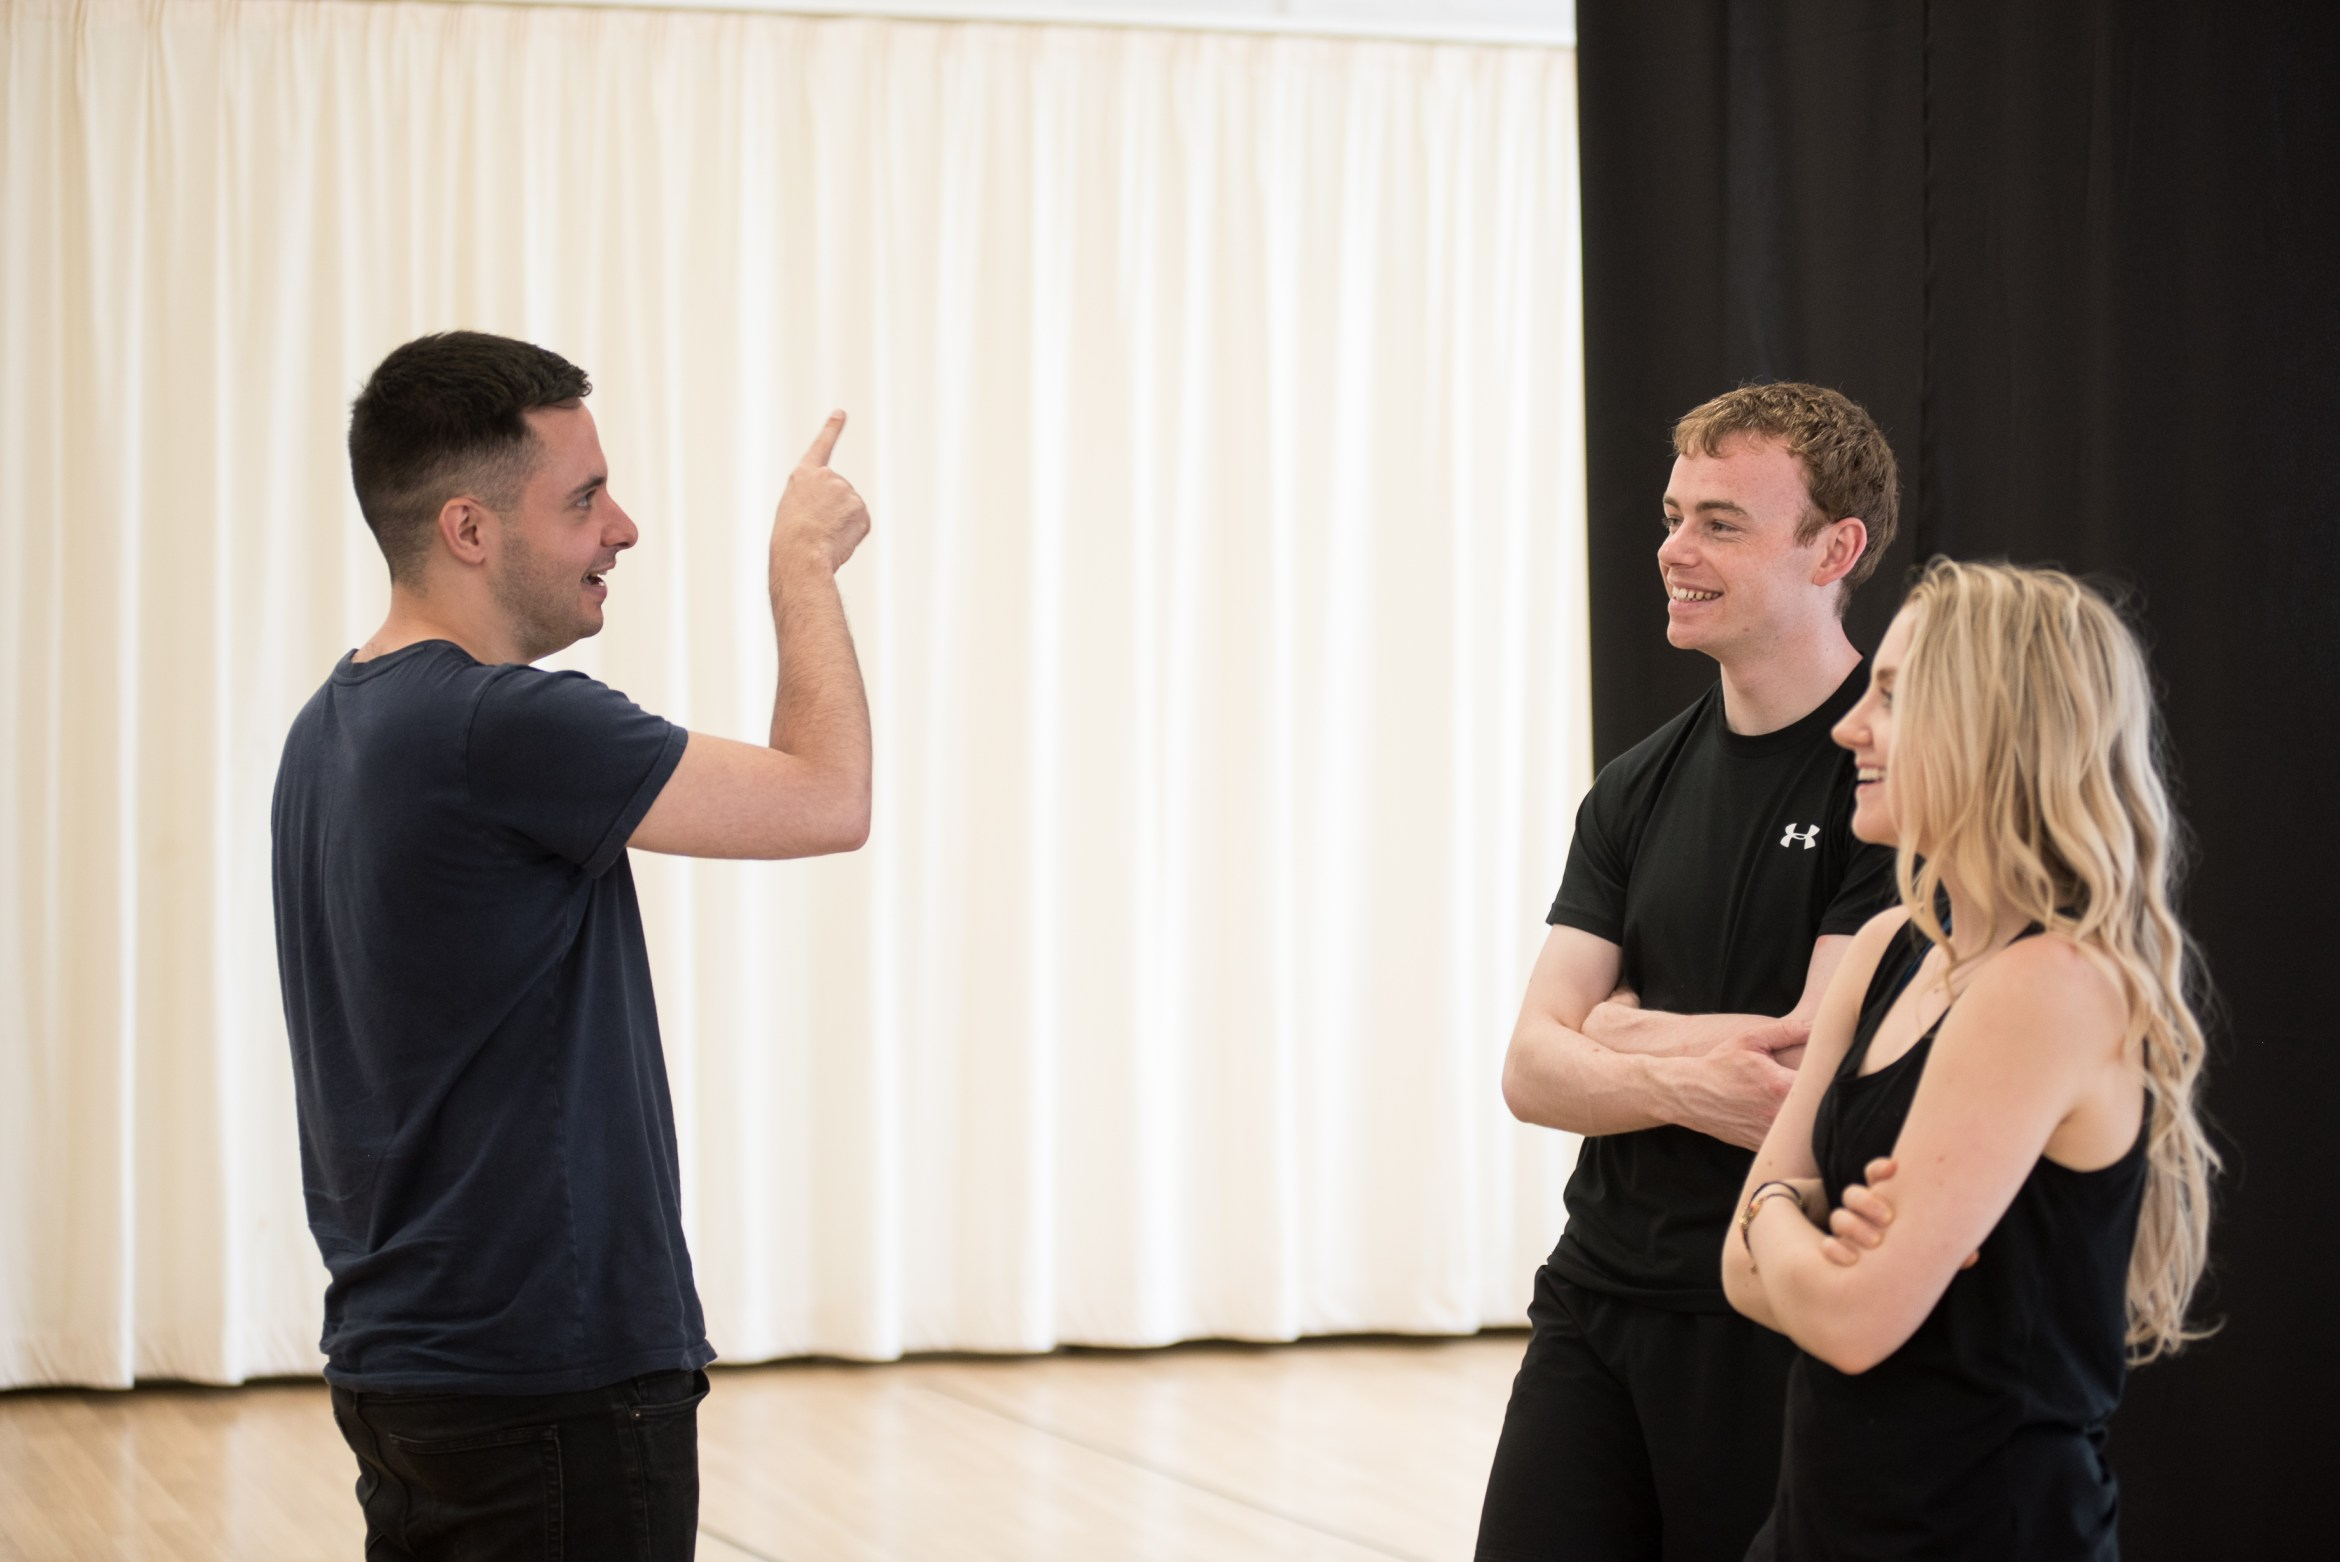 Disco Pigs - Director, John Haidar, Colin Campbell and Evanna Lynch - photos by Savannah Photographic